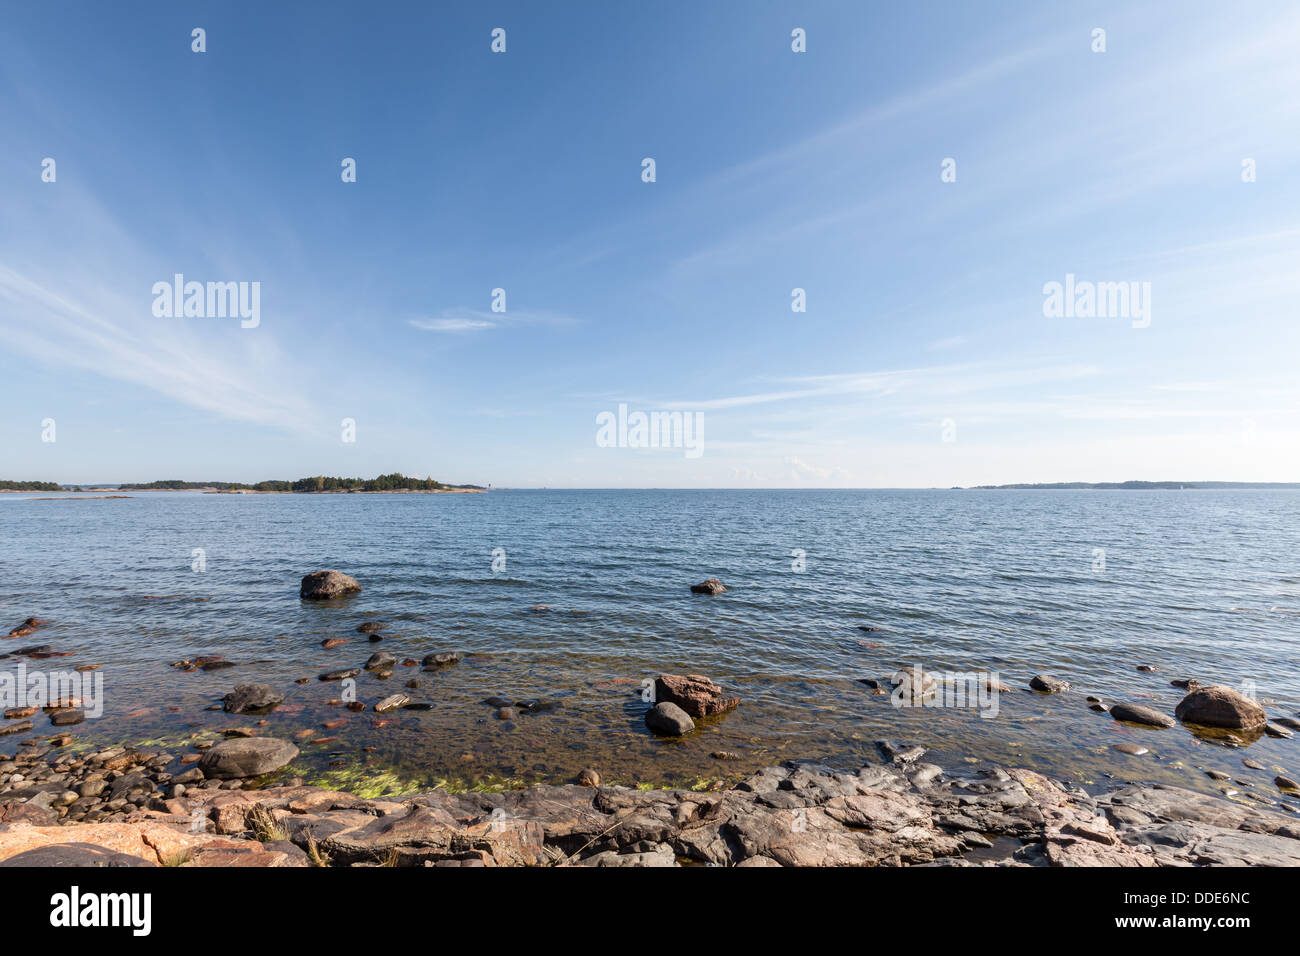 A beautiful view of the Baltic Sea - Stock Image